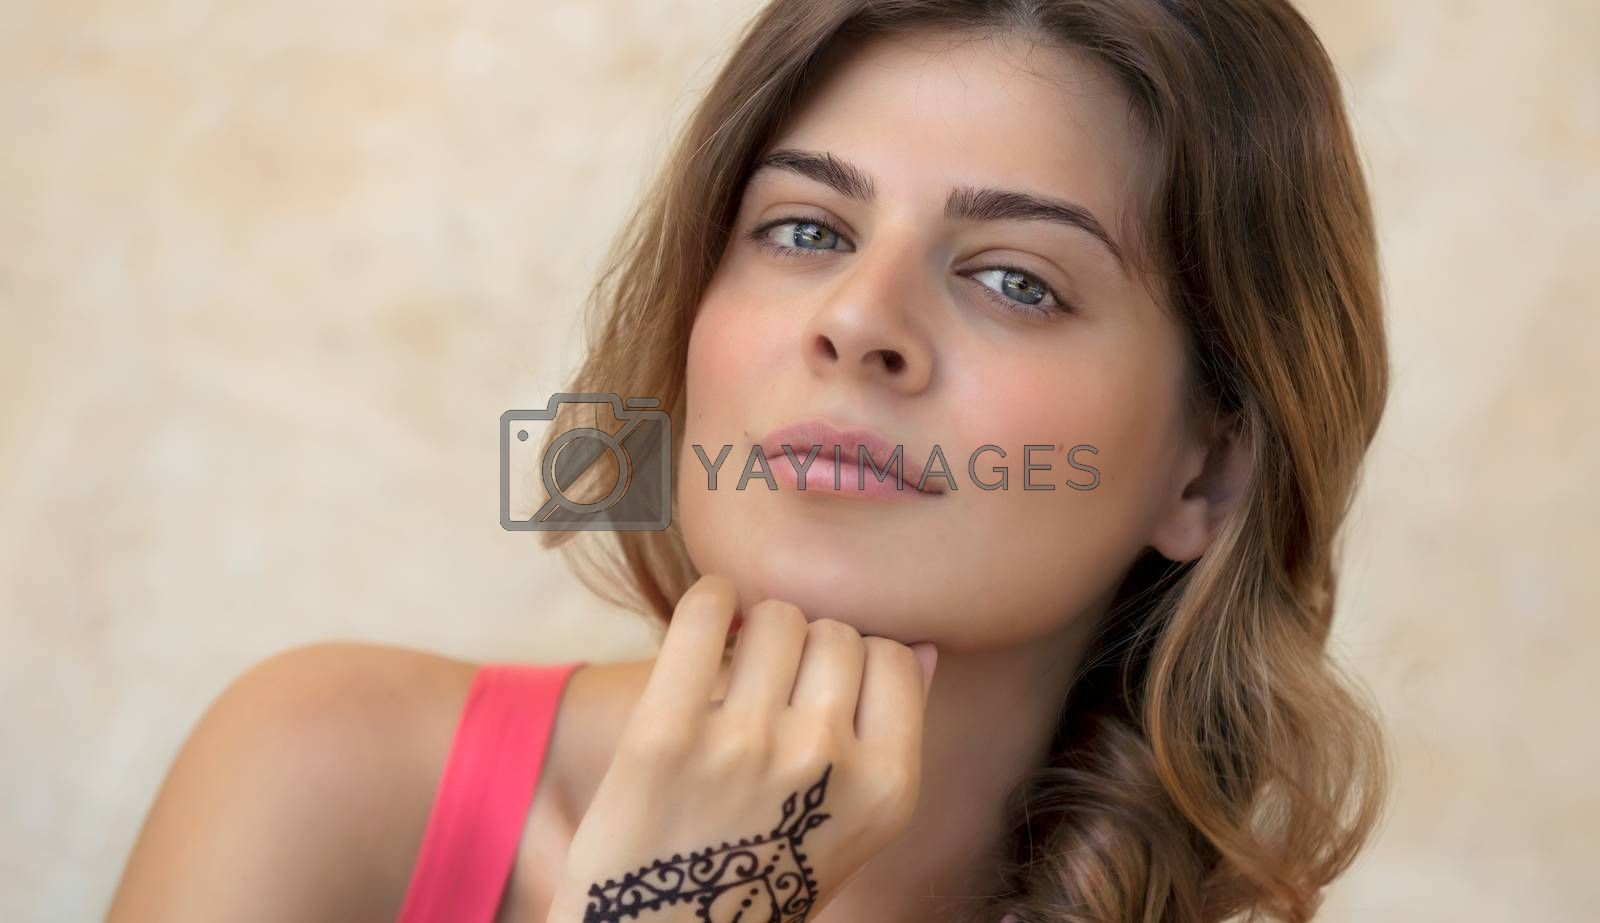 Genuine Portrait of an Attractive Woman Isolated on Beige Background with Beautiful Tattoo on the Hand. Stylish Body Art. Natural Beauty of Young Female.